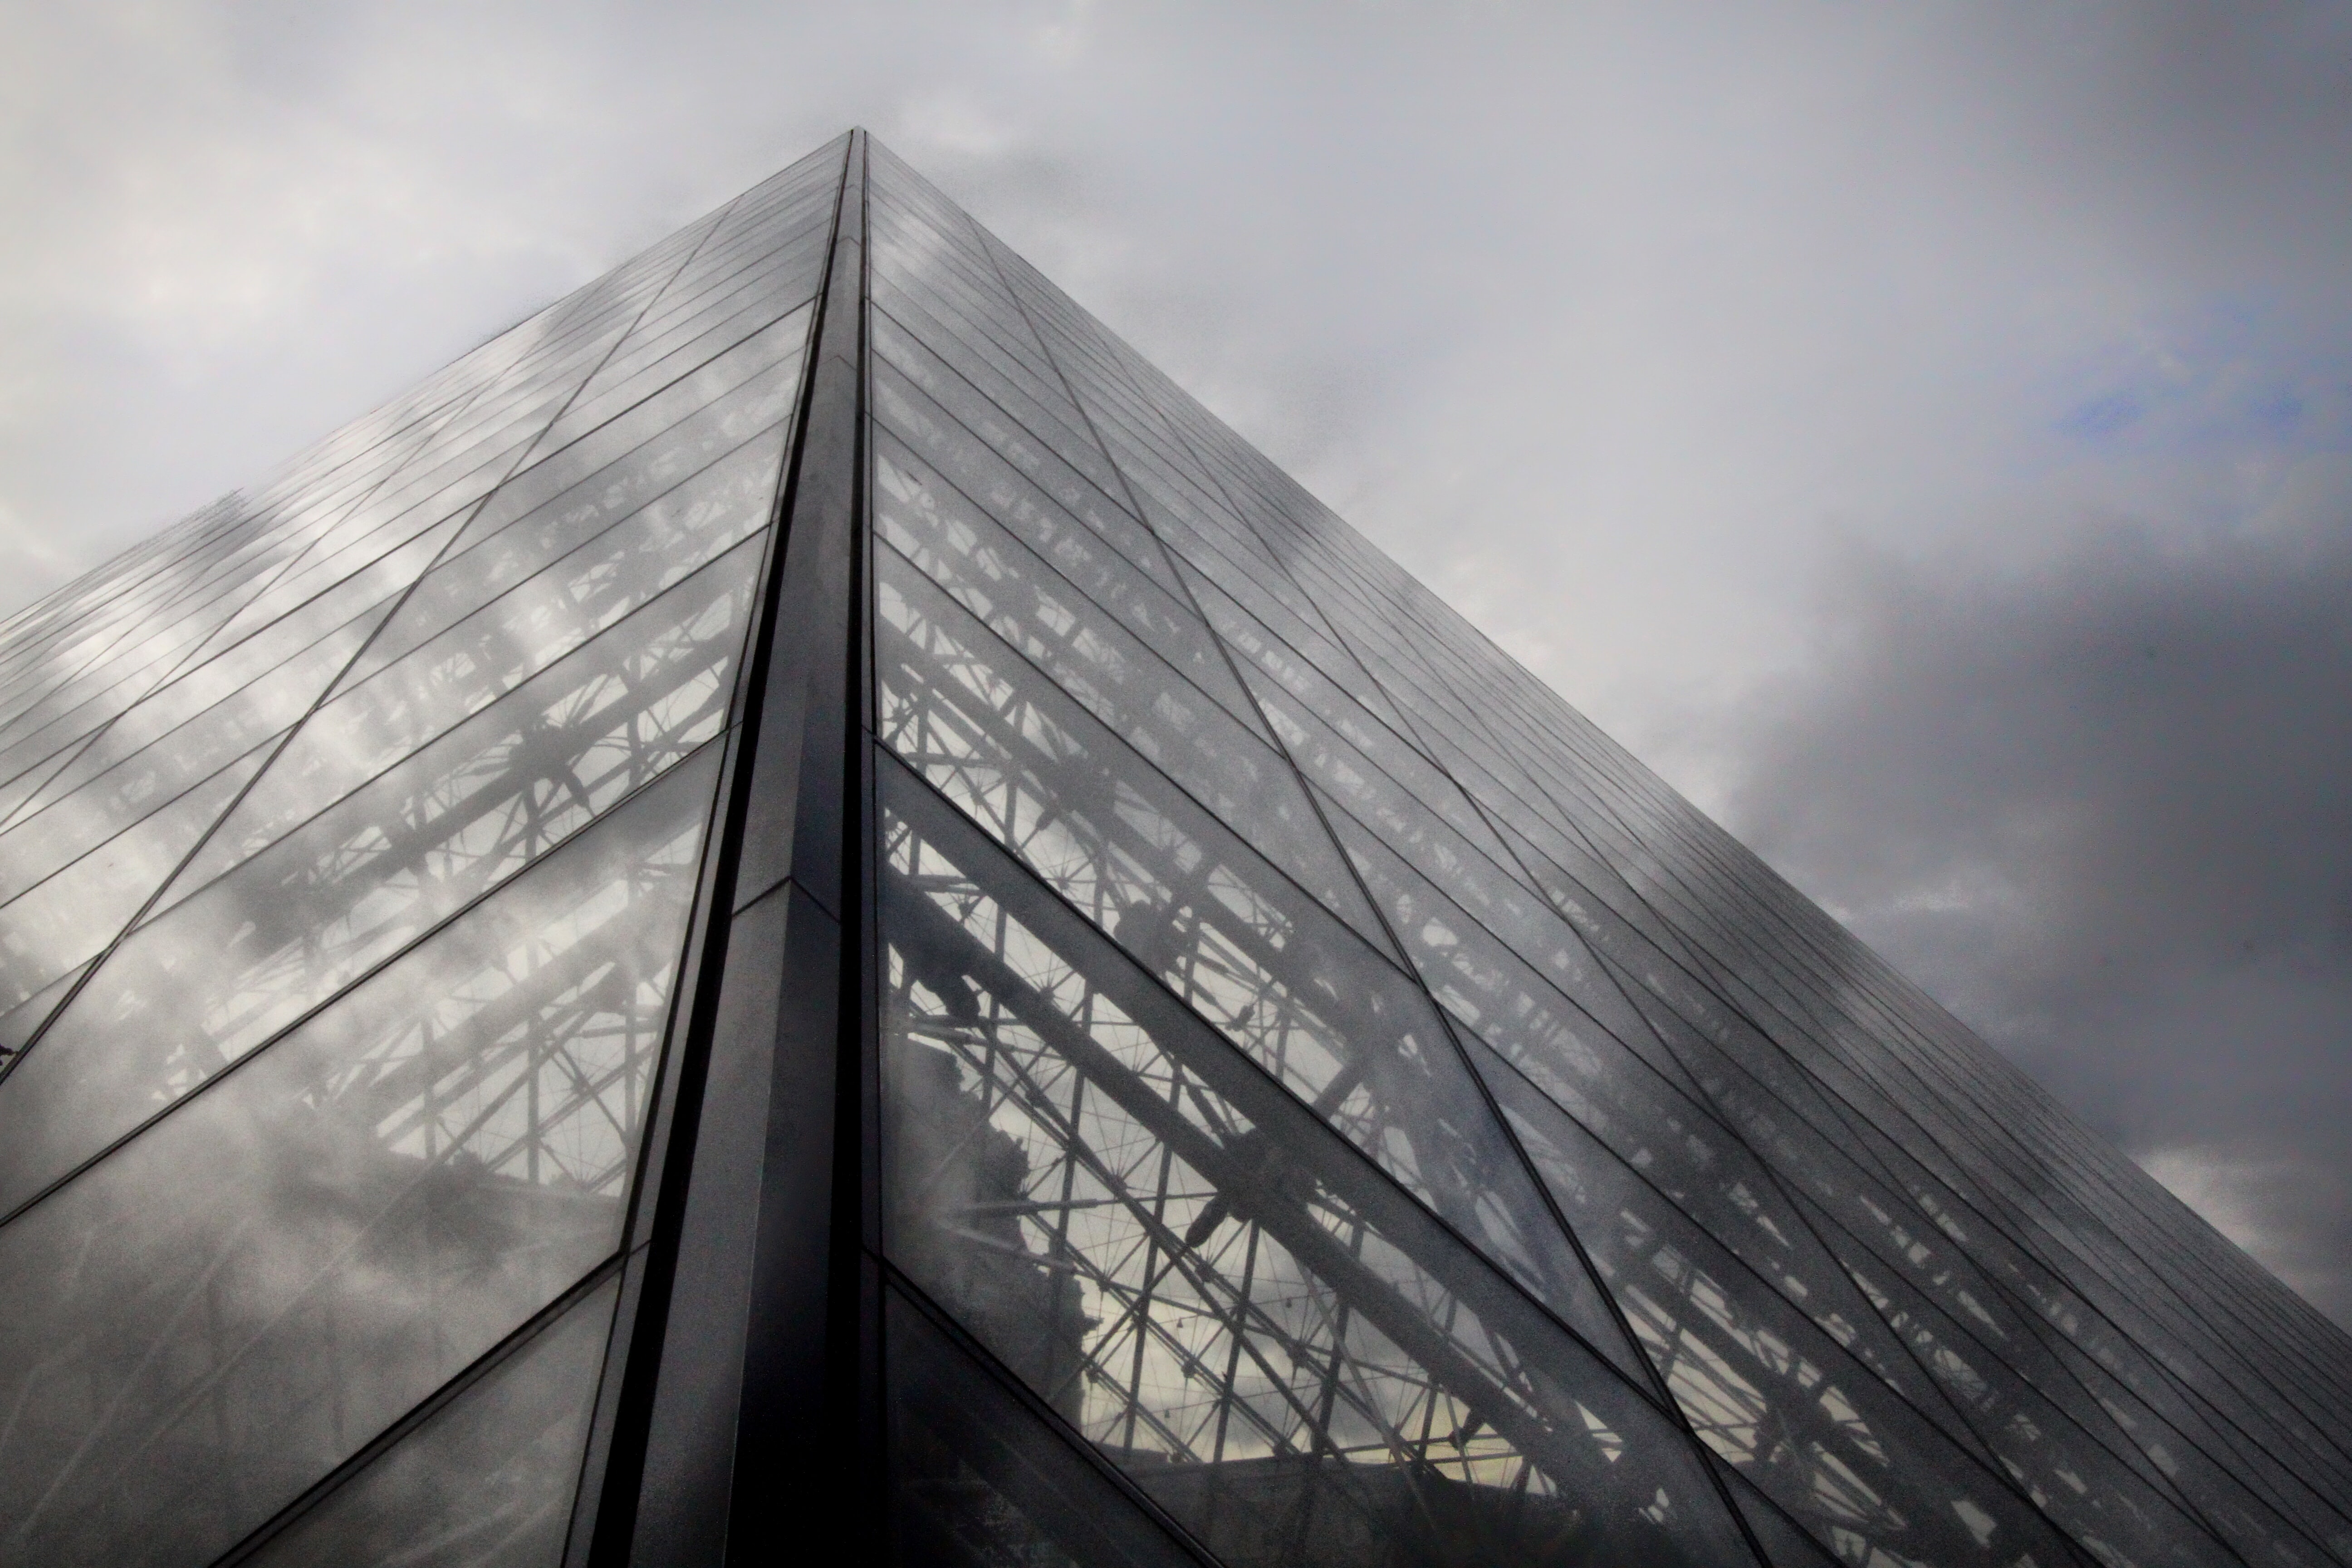 The glass wall exterior of a large French building.